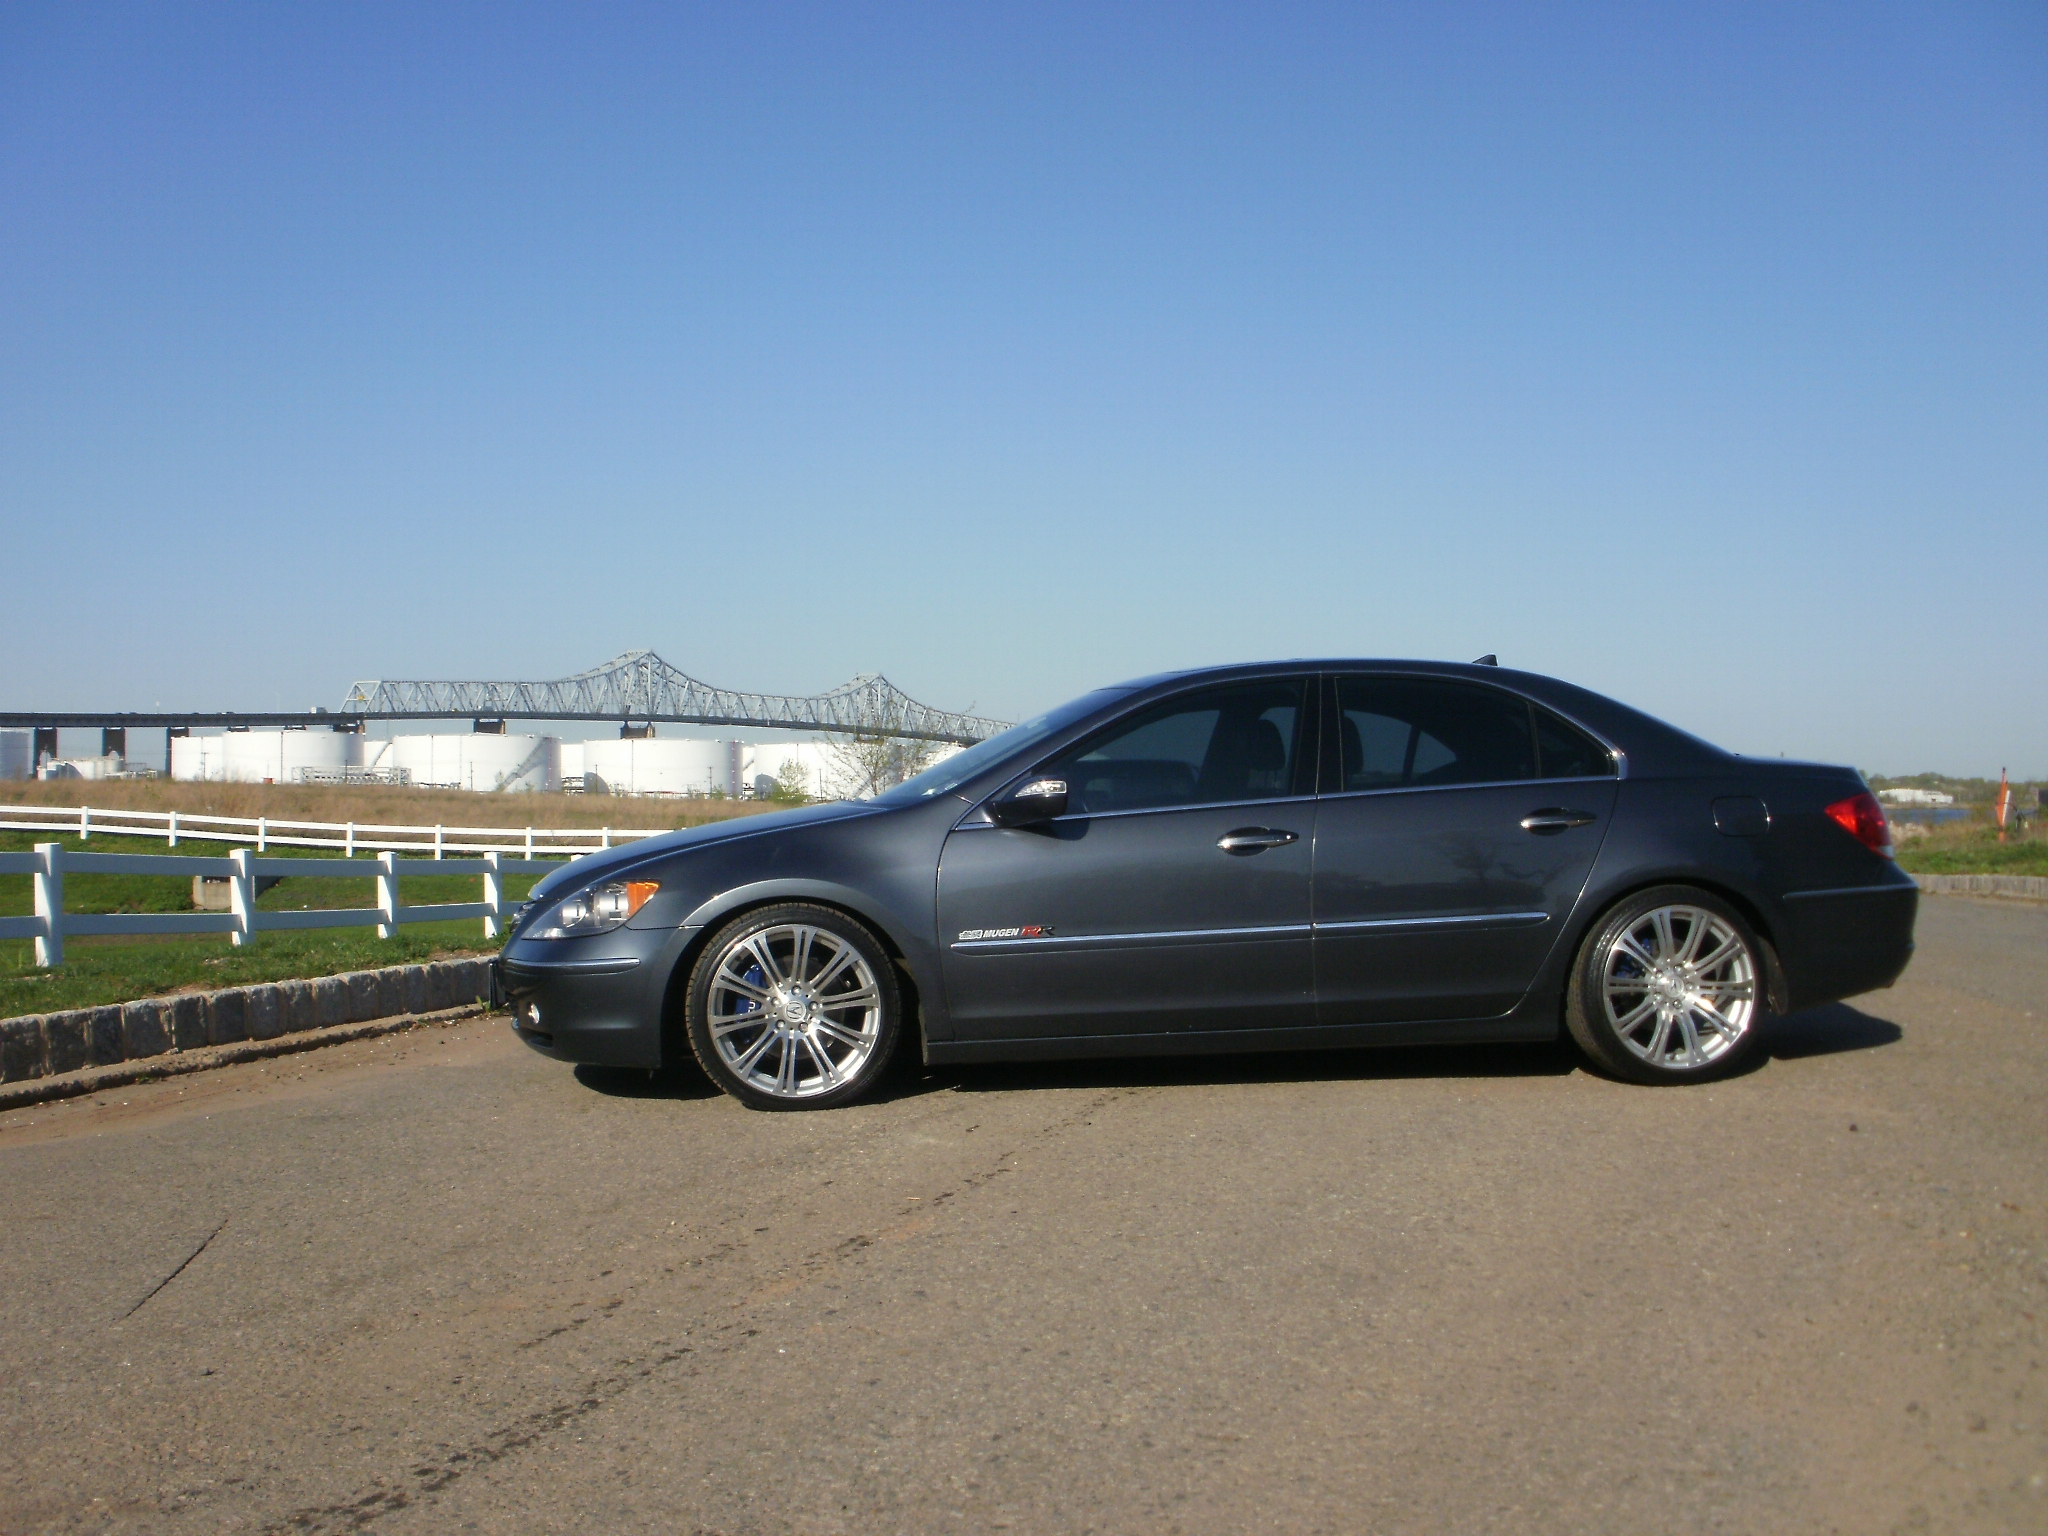 Guss 90 2005 Acura Rl Specs Photos Modification At HD Wallpapers Download free images and photos [musssic.tk]